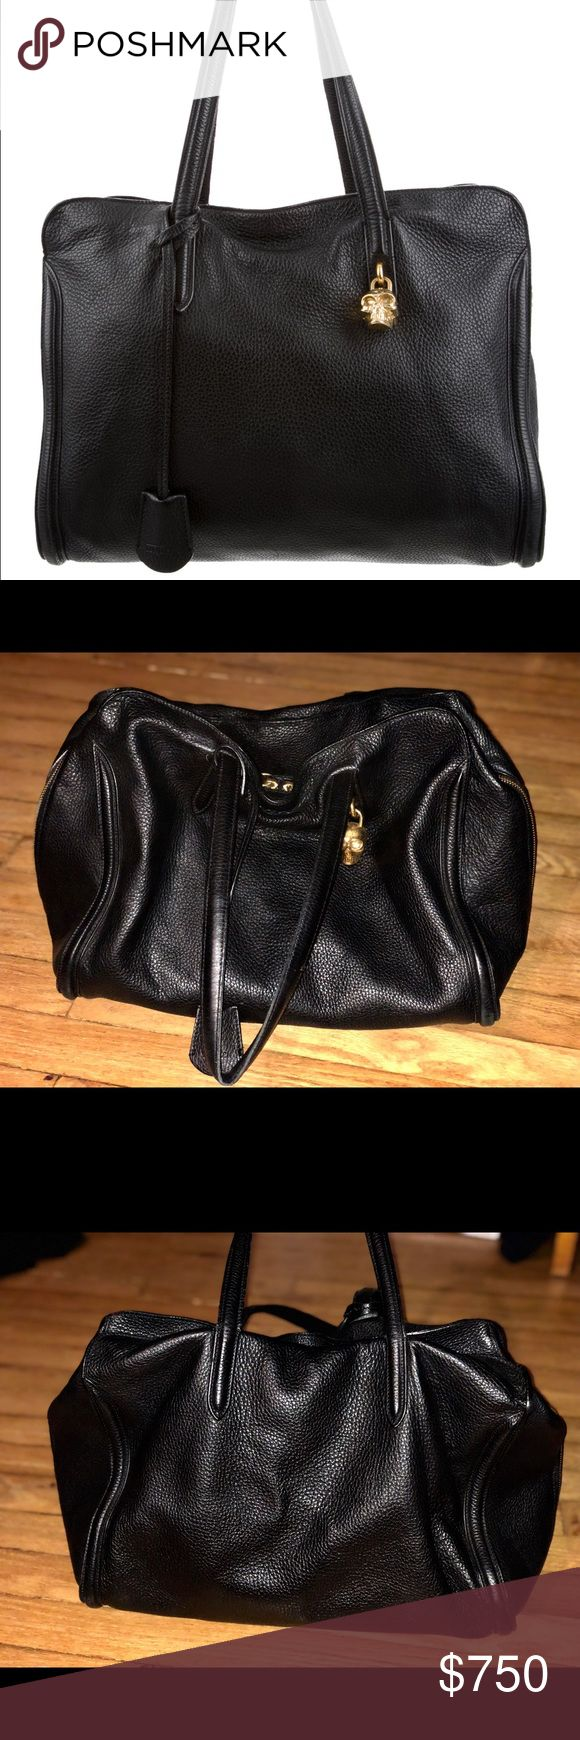 Authentic Alexander McQueen Skull Zip-Around Tote Up for sale is an authentic Alexander McQueen zip around tote bag with a golden skull padlock. Good condition, some minor scratching on the skull padlock. The leather is in excellent condition, thick and soft. Any questions or need more pics, just ask. Alexander McQueen Bags Totes